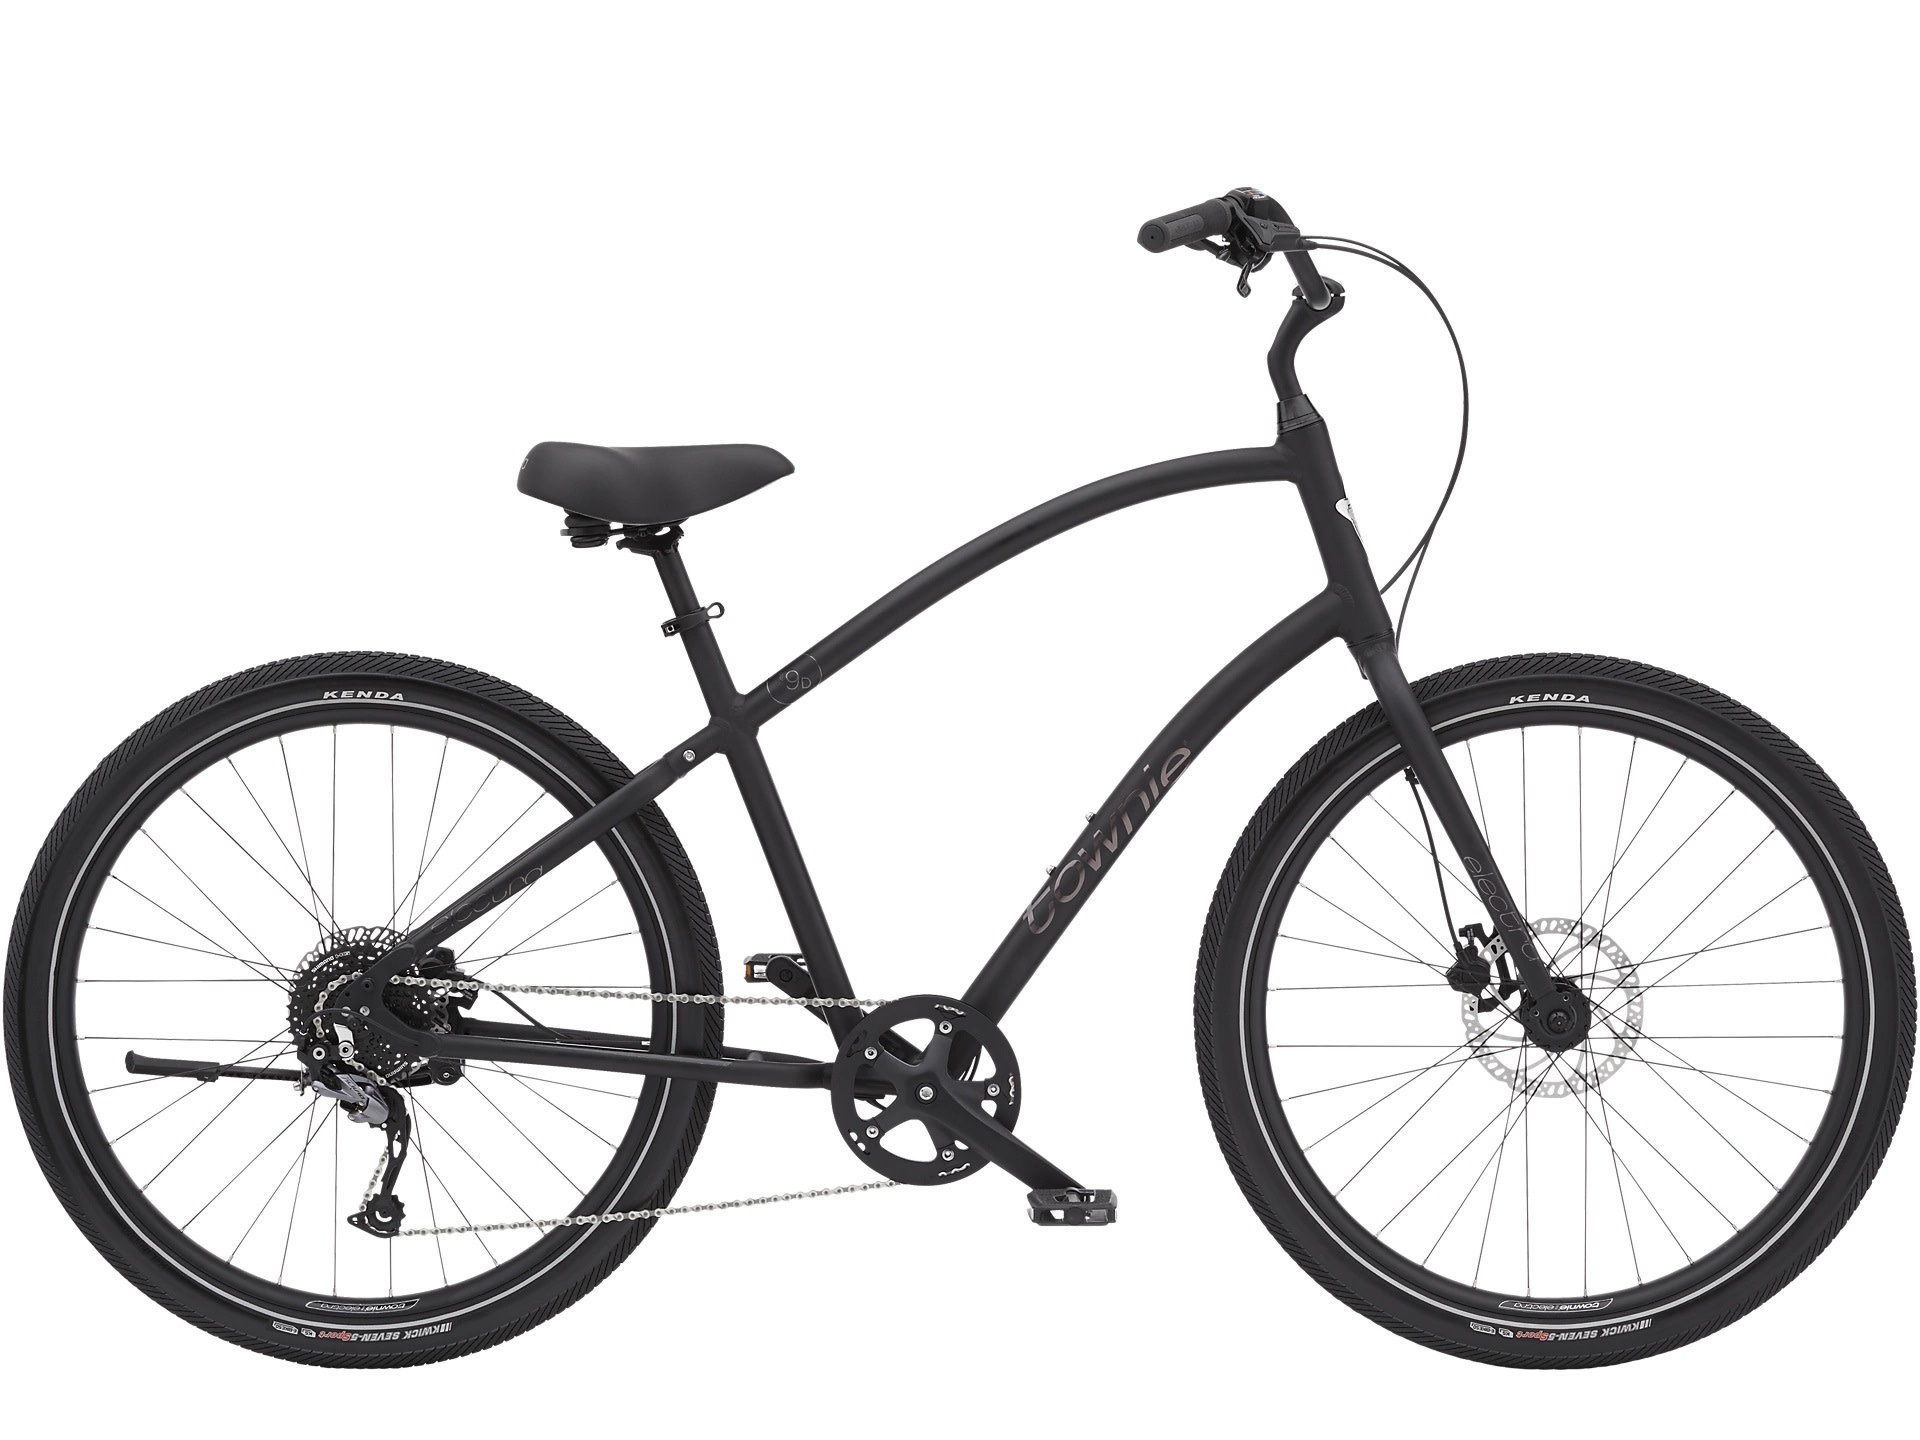 Electra Electra Townie Path 9D Step-Over